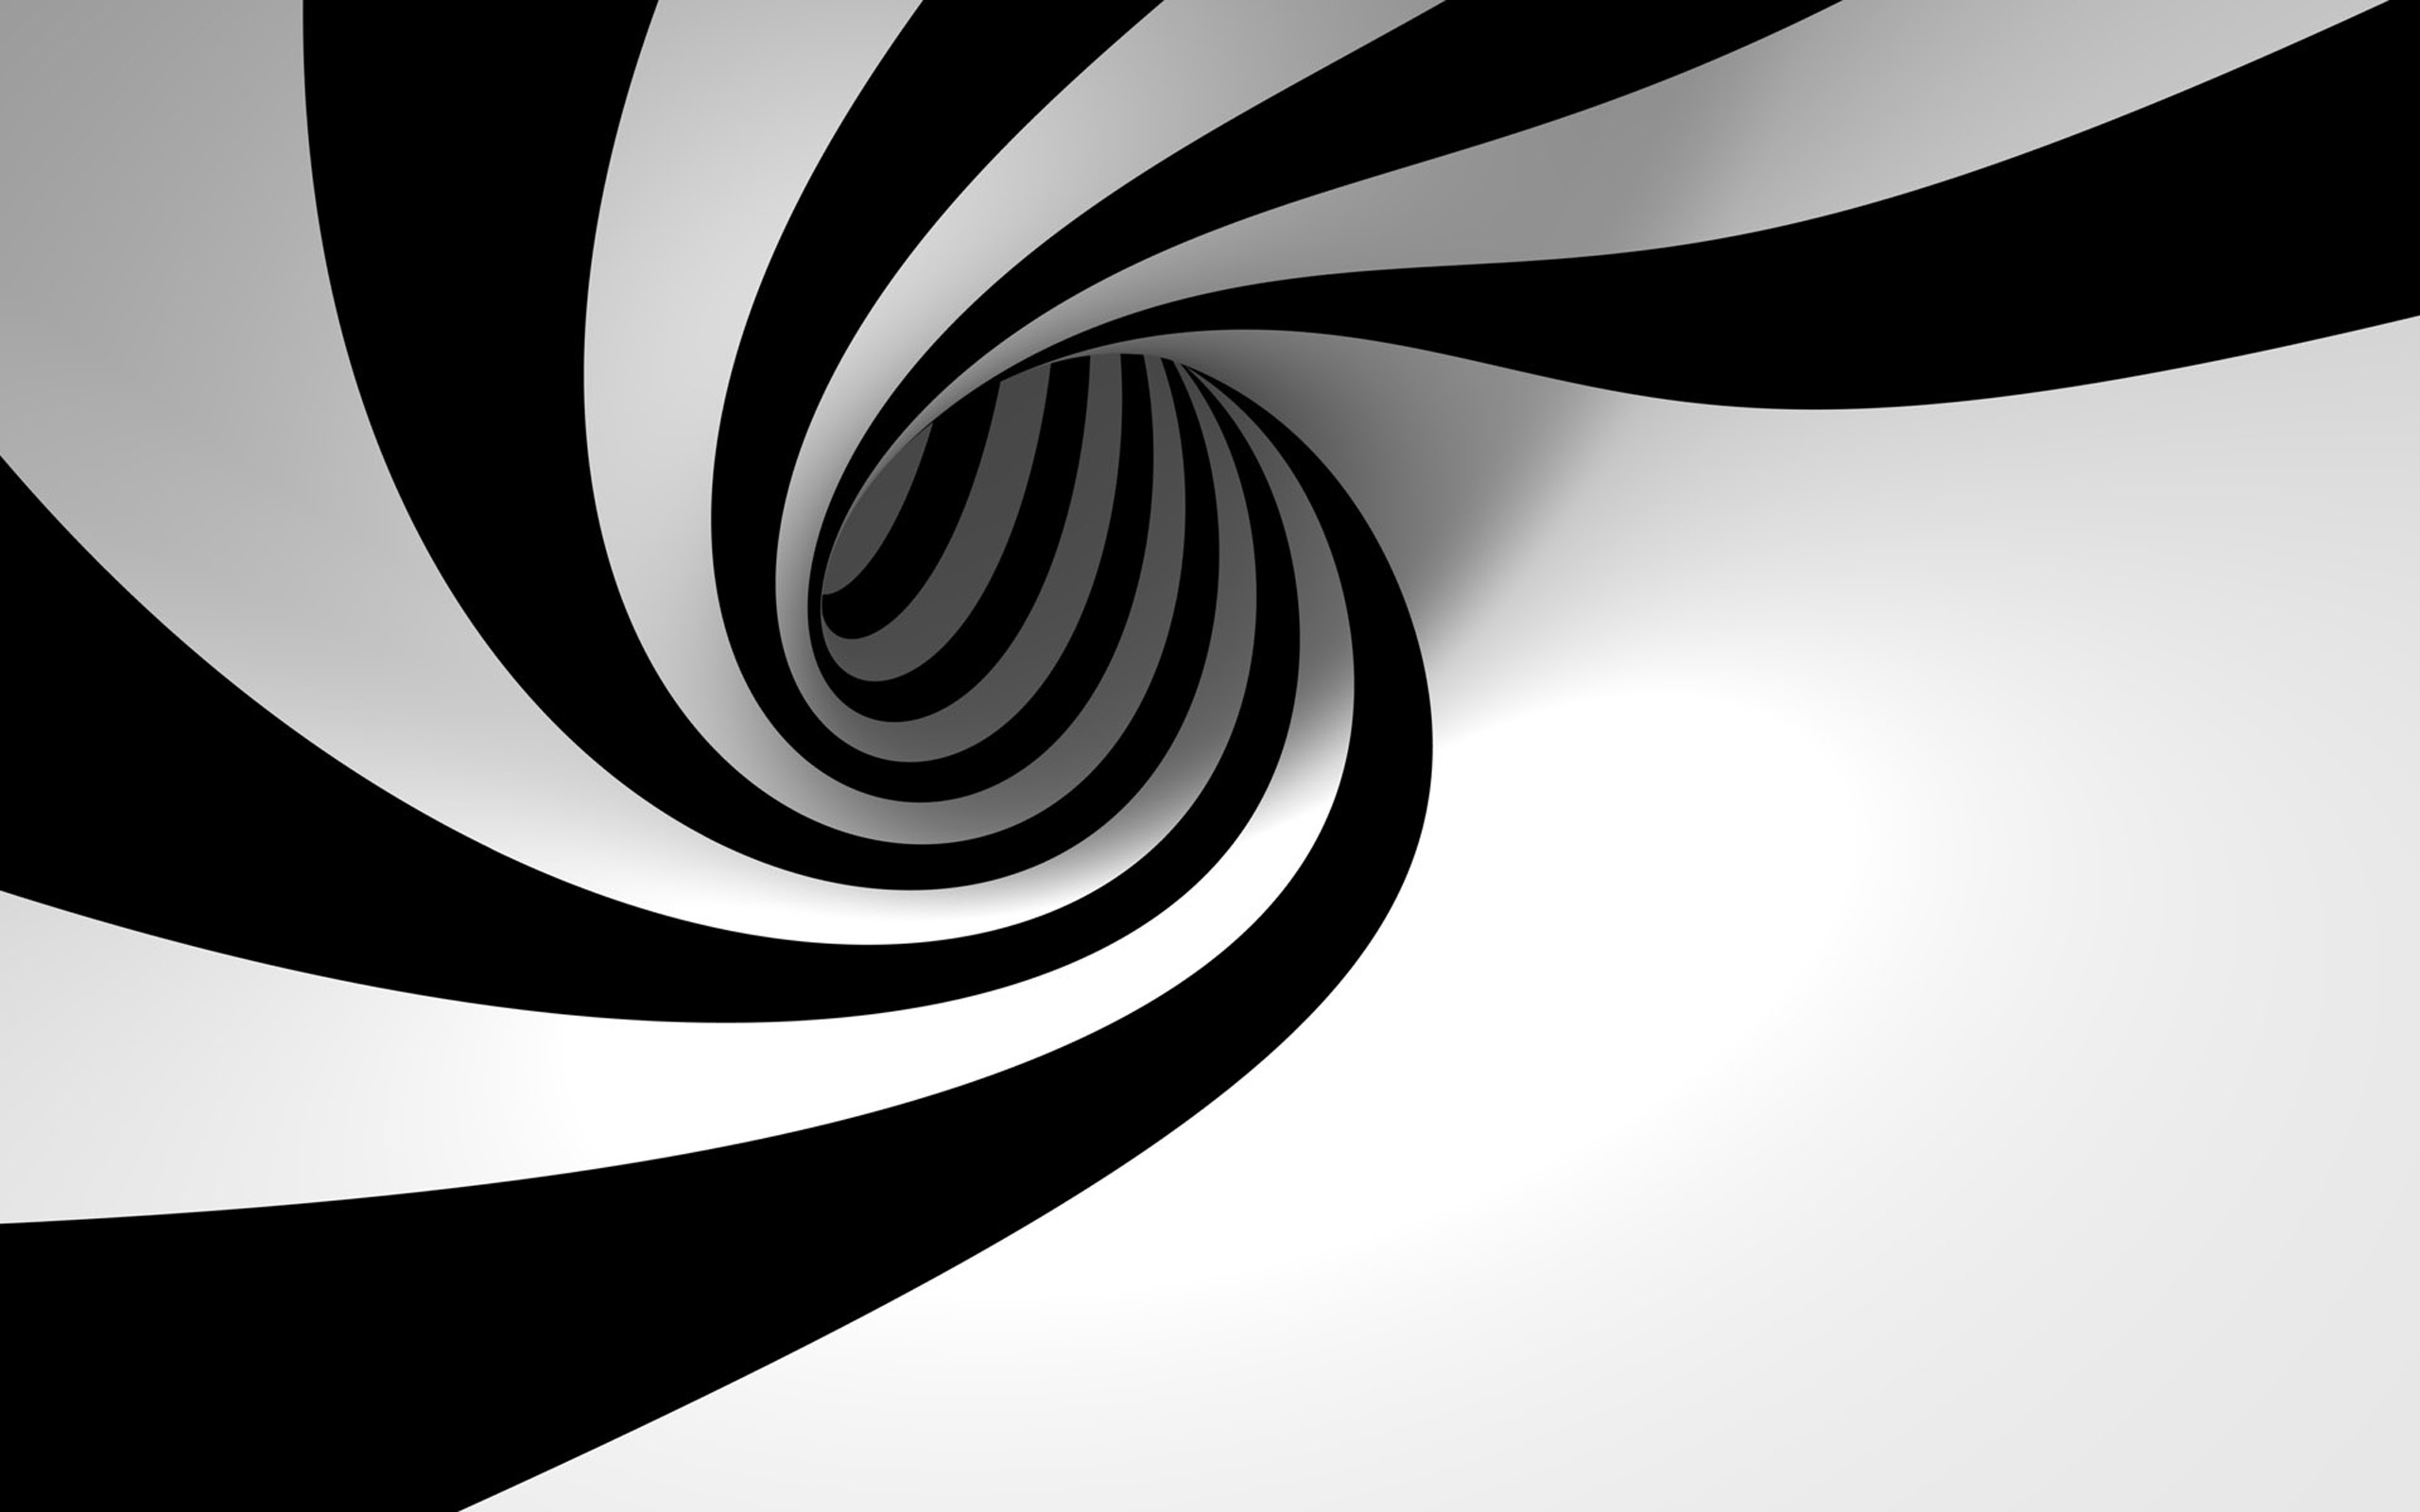 3D Black and White Abstract